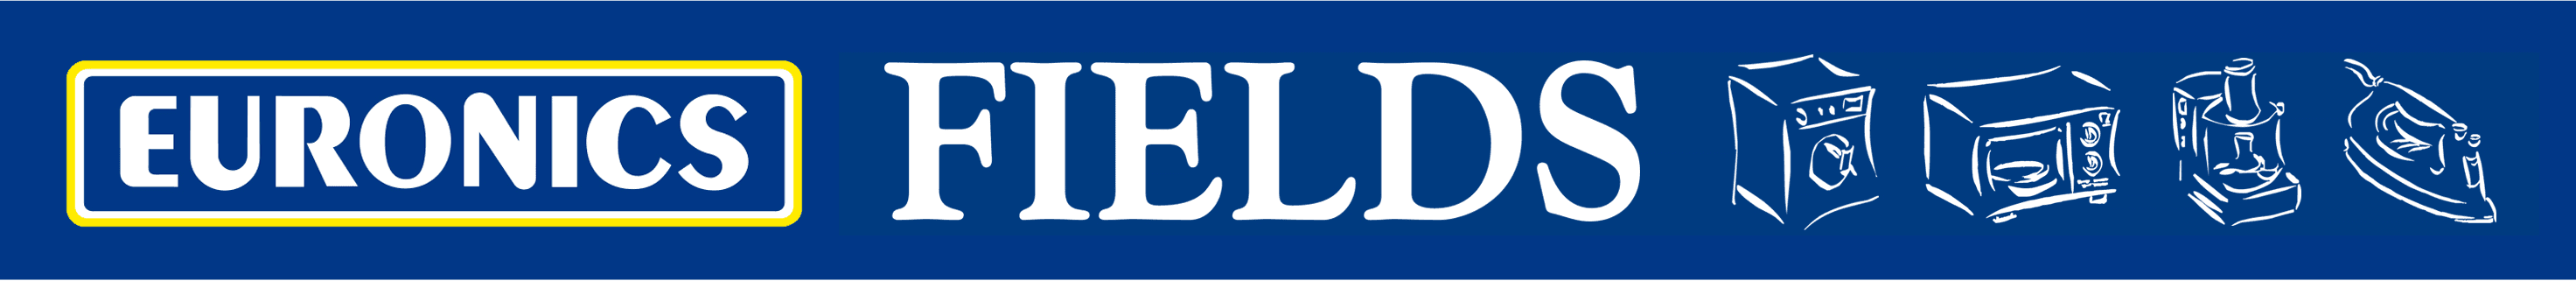 Euronics Fields logo